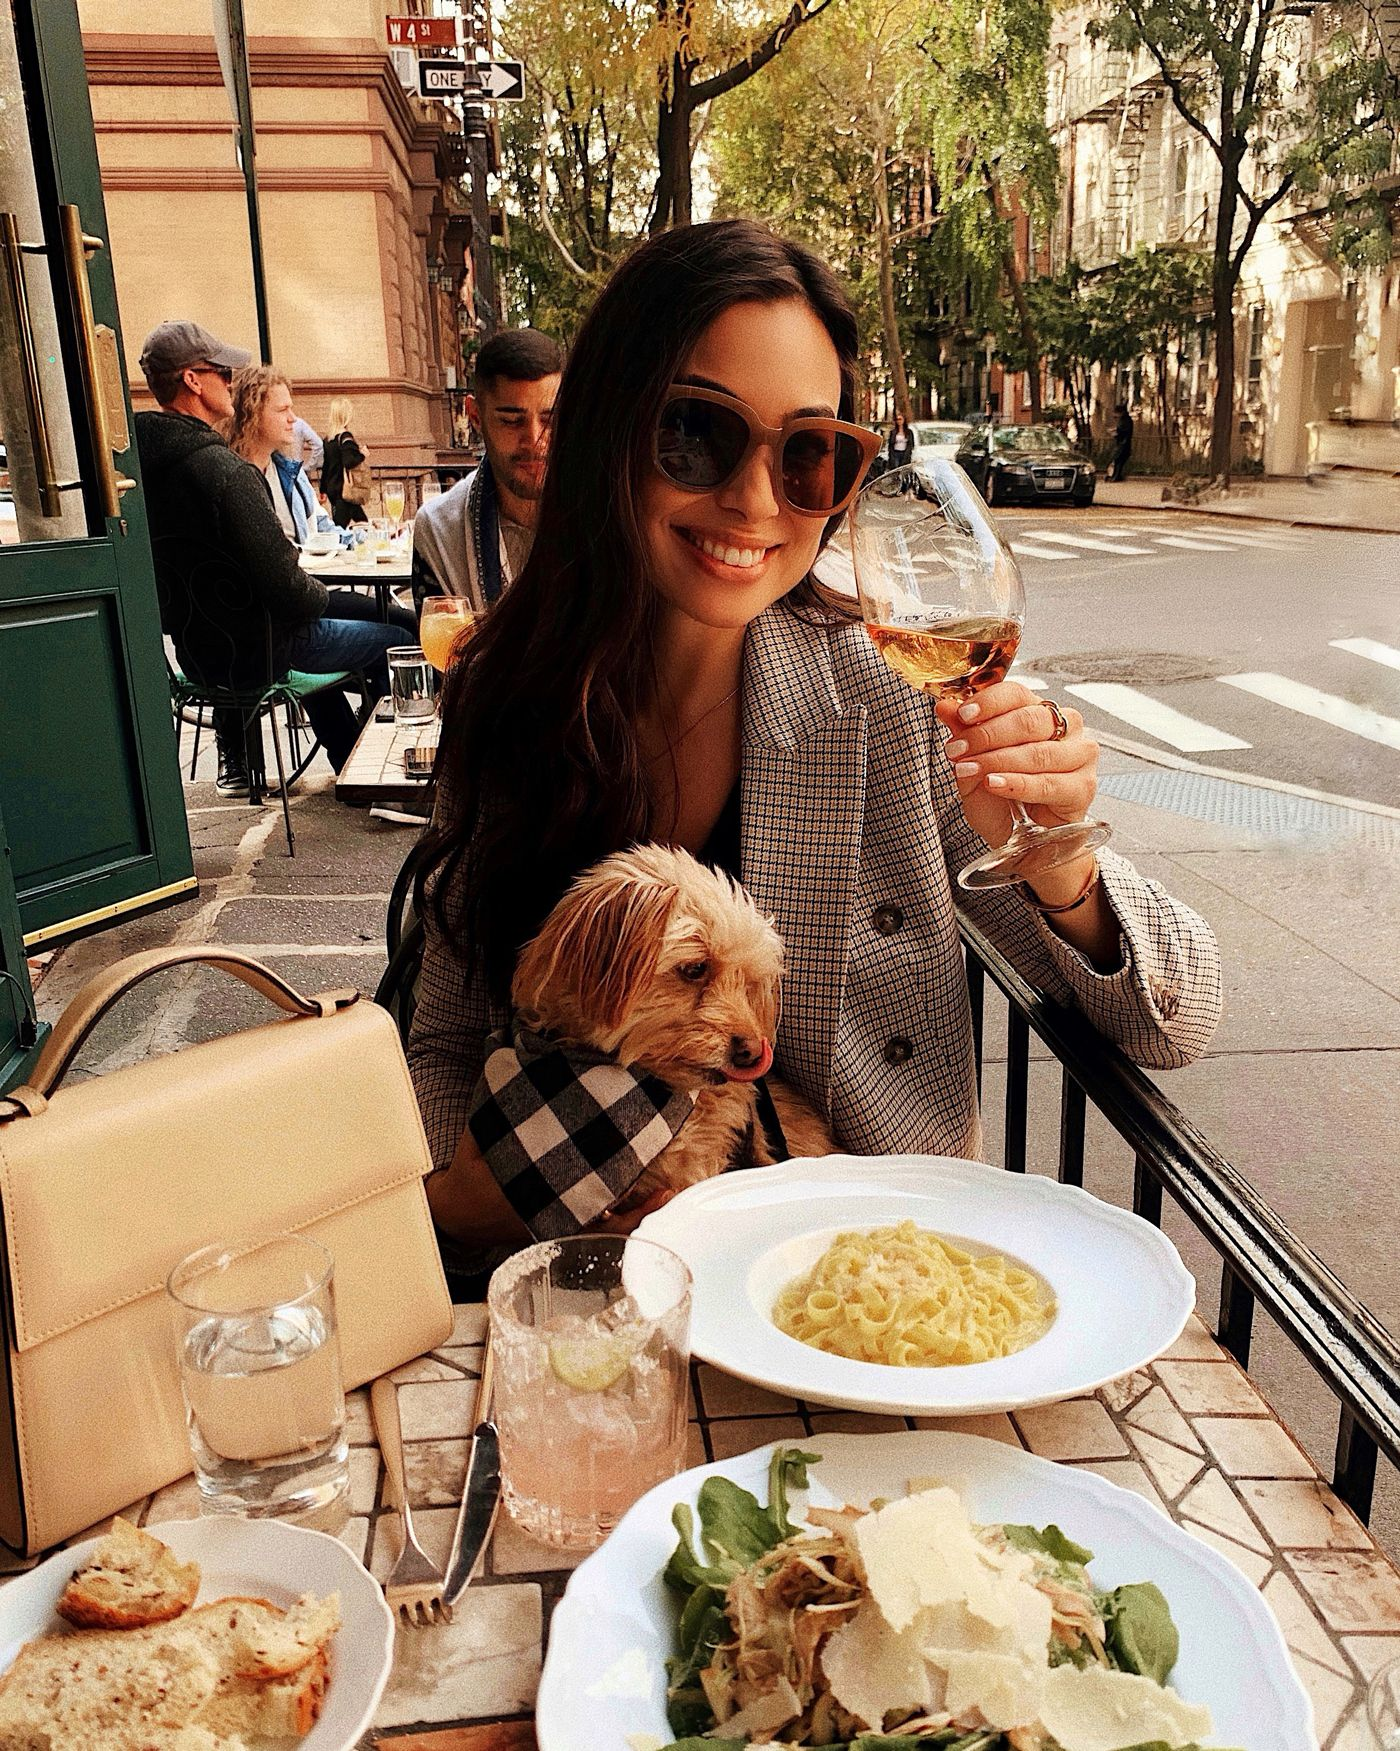 Dog Friendly Restaurants In Nyc In 2020 Nyc Restaurants Dog Friends Nyc